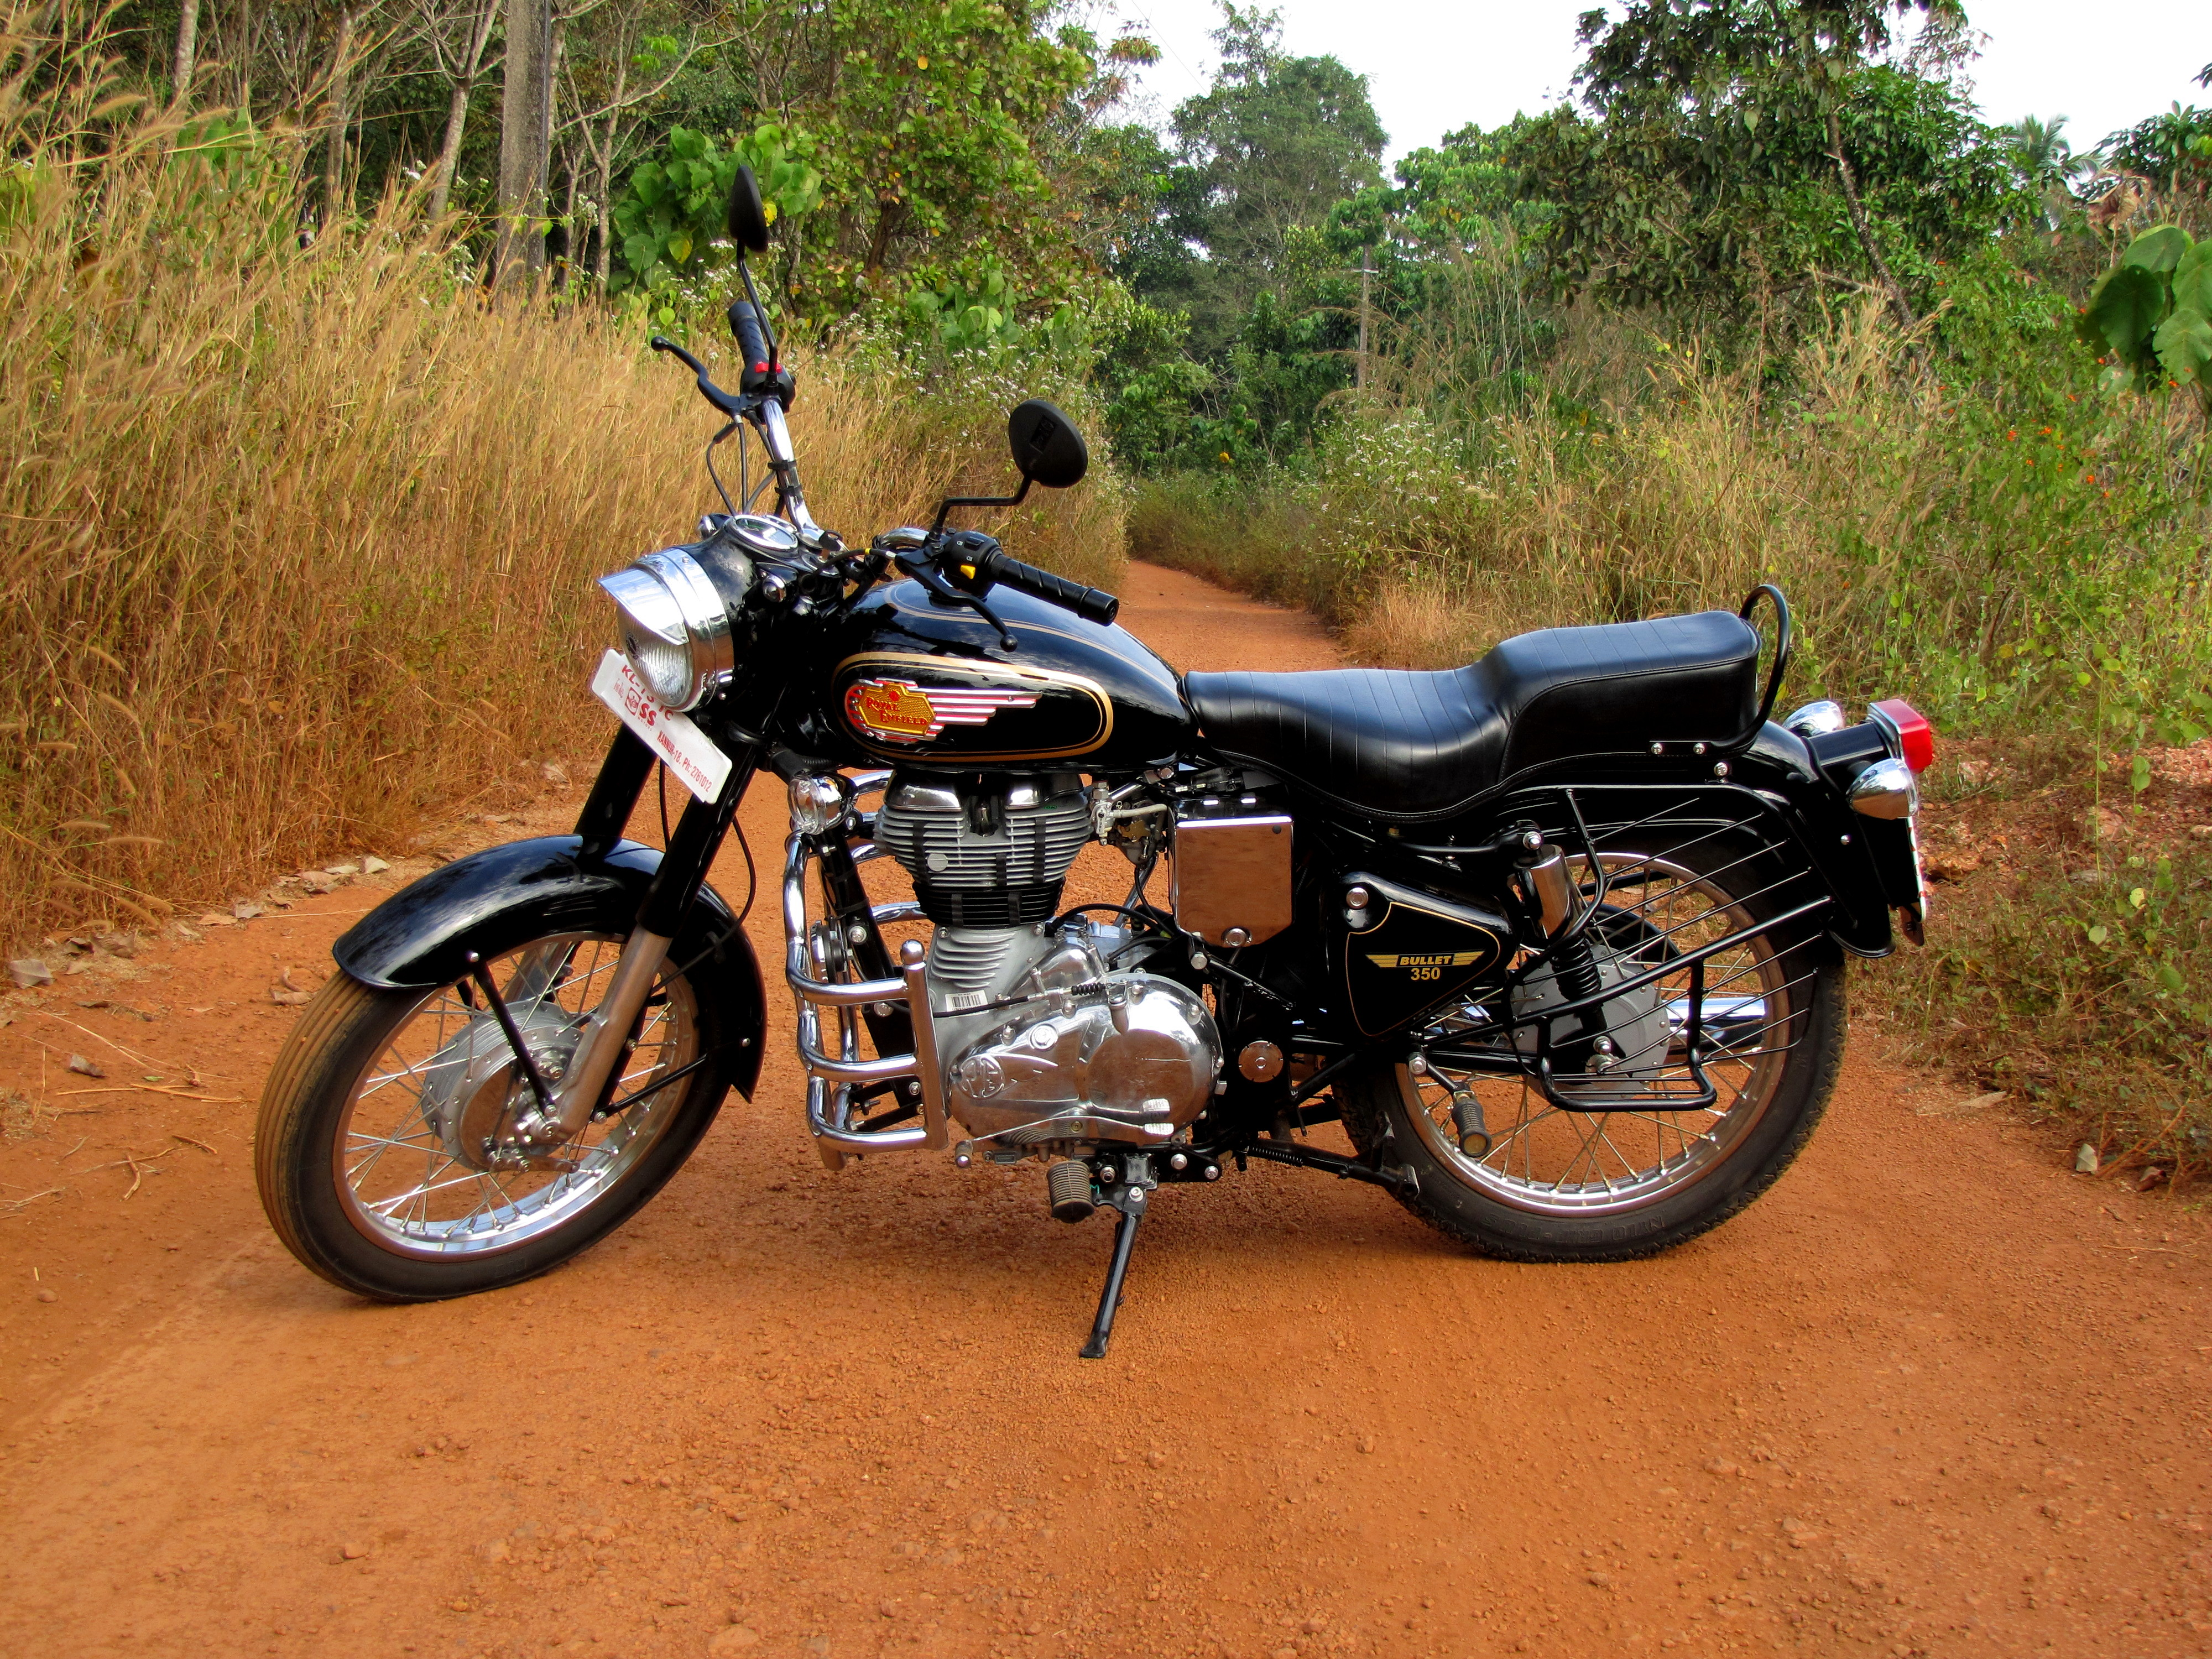 Royal Enfield Bullet 500 Army 2002 images #123421